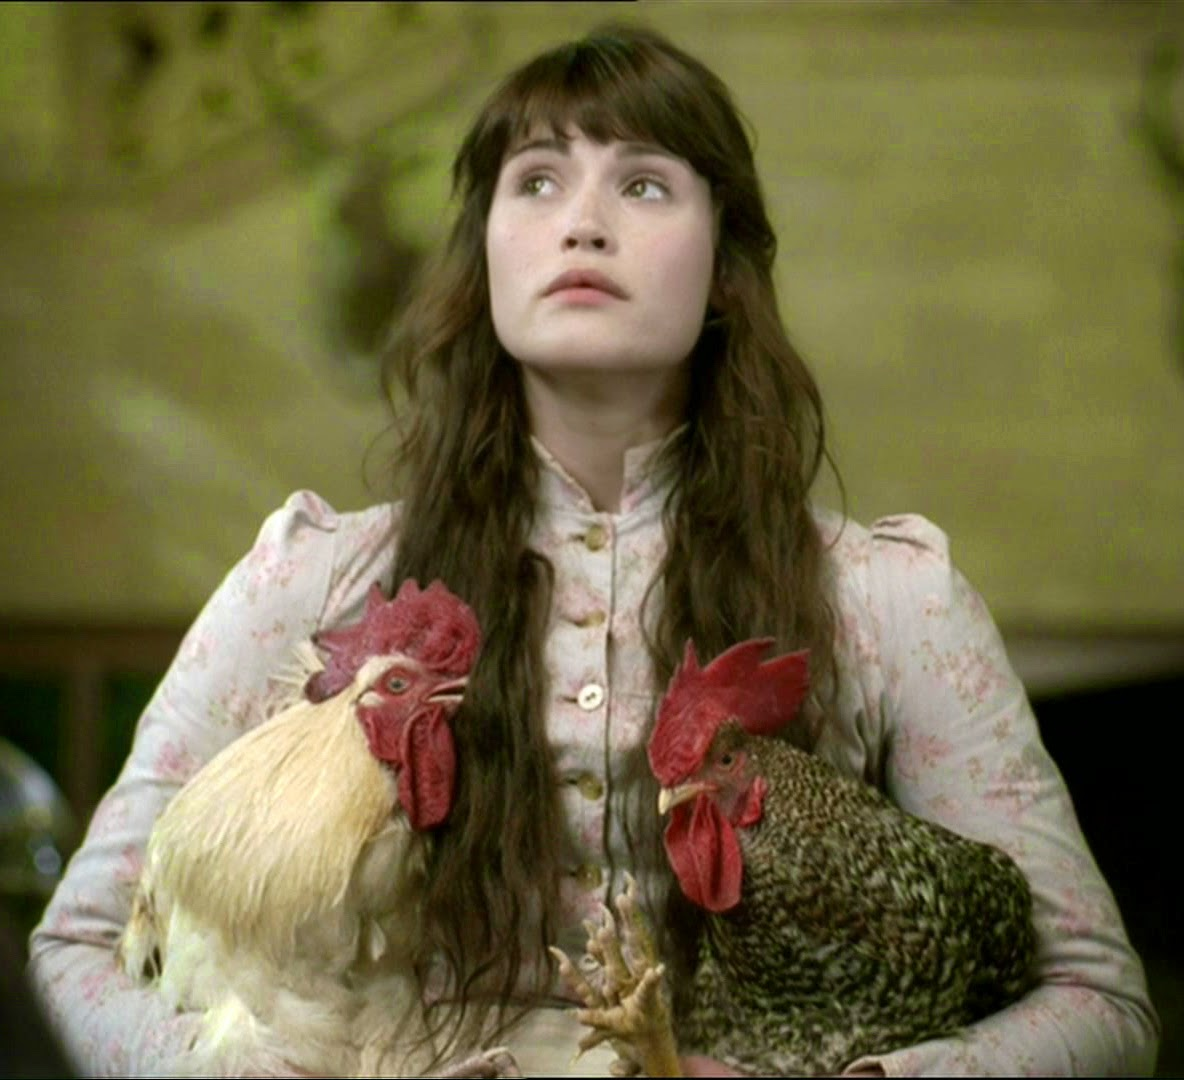 What are a few examples of realism in Thomas Hardy's Tess of the d'Urbervilles?